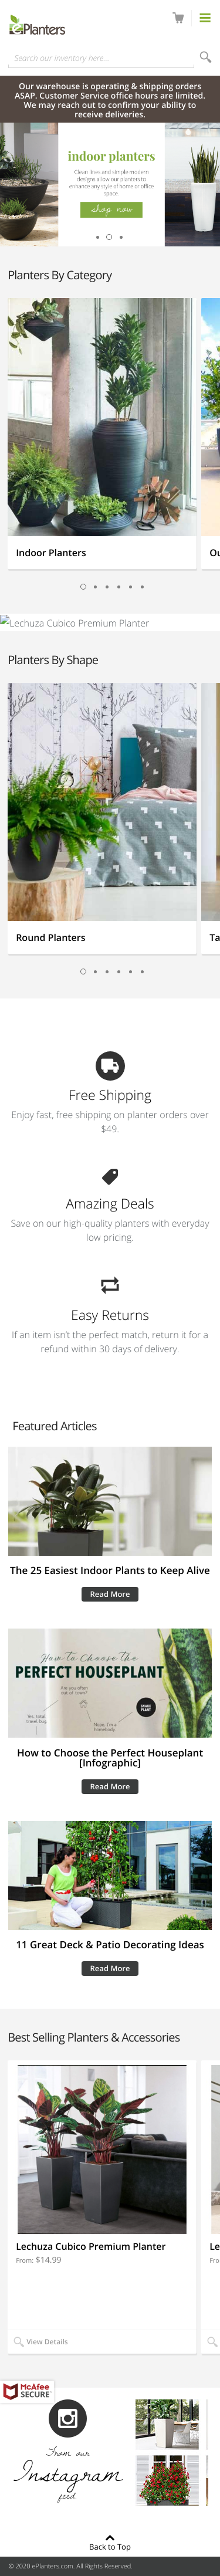 ePlanters Coupon